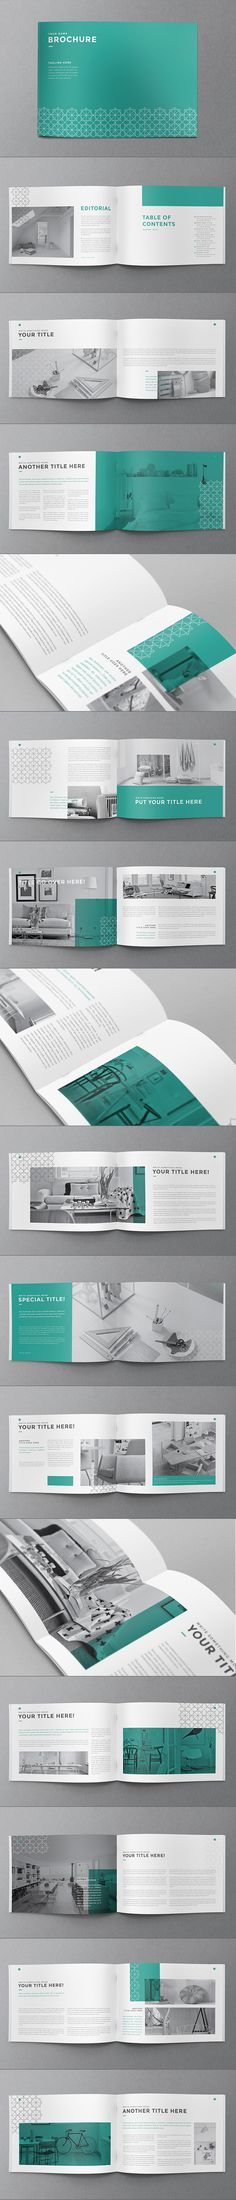 Minimal Pattern Brochure. Download here: http://graphicriver.net/item/minimal-pattern-brochure/12751211?ref=abradesign